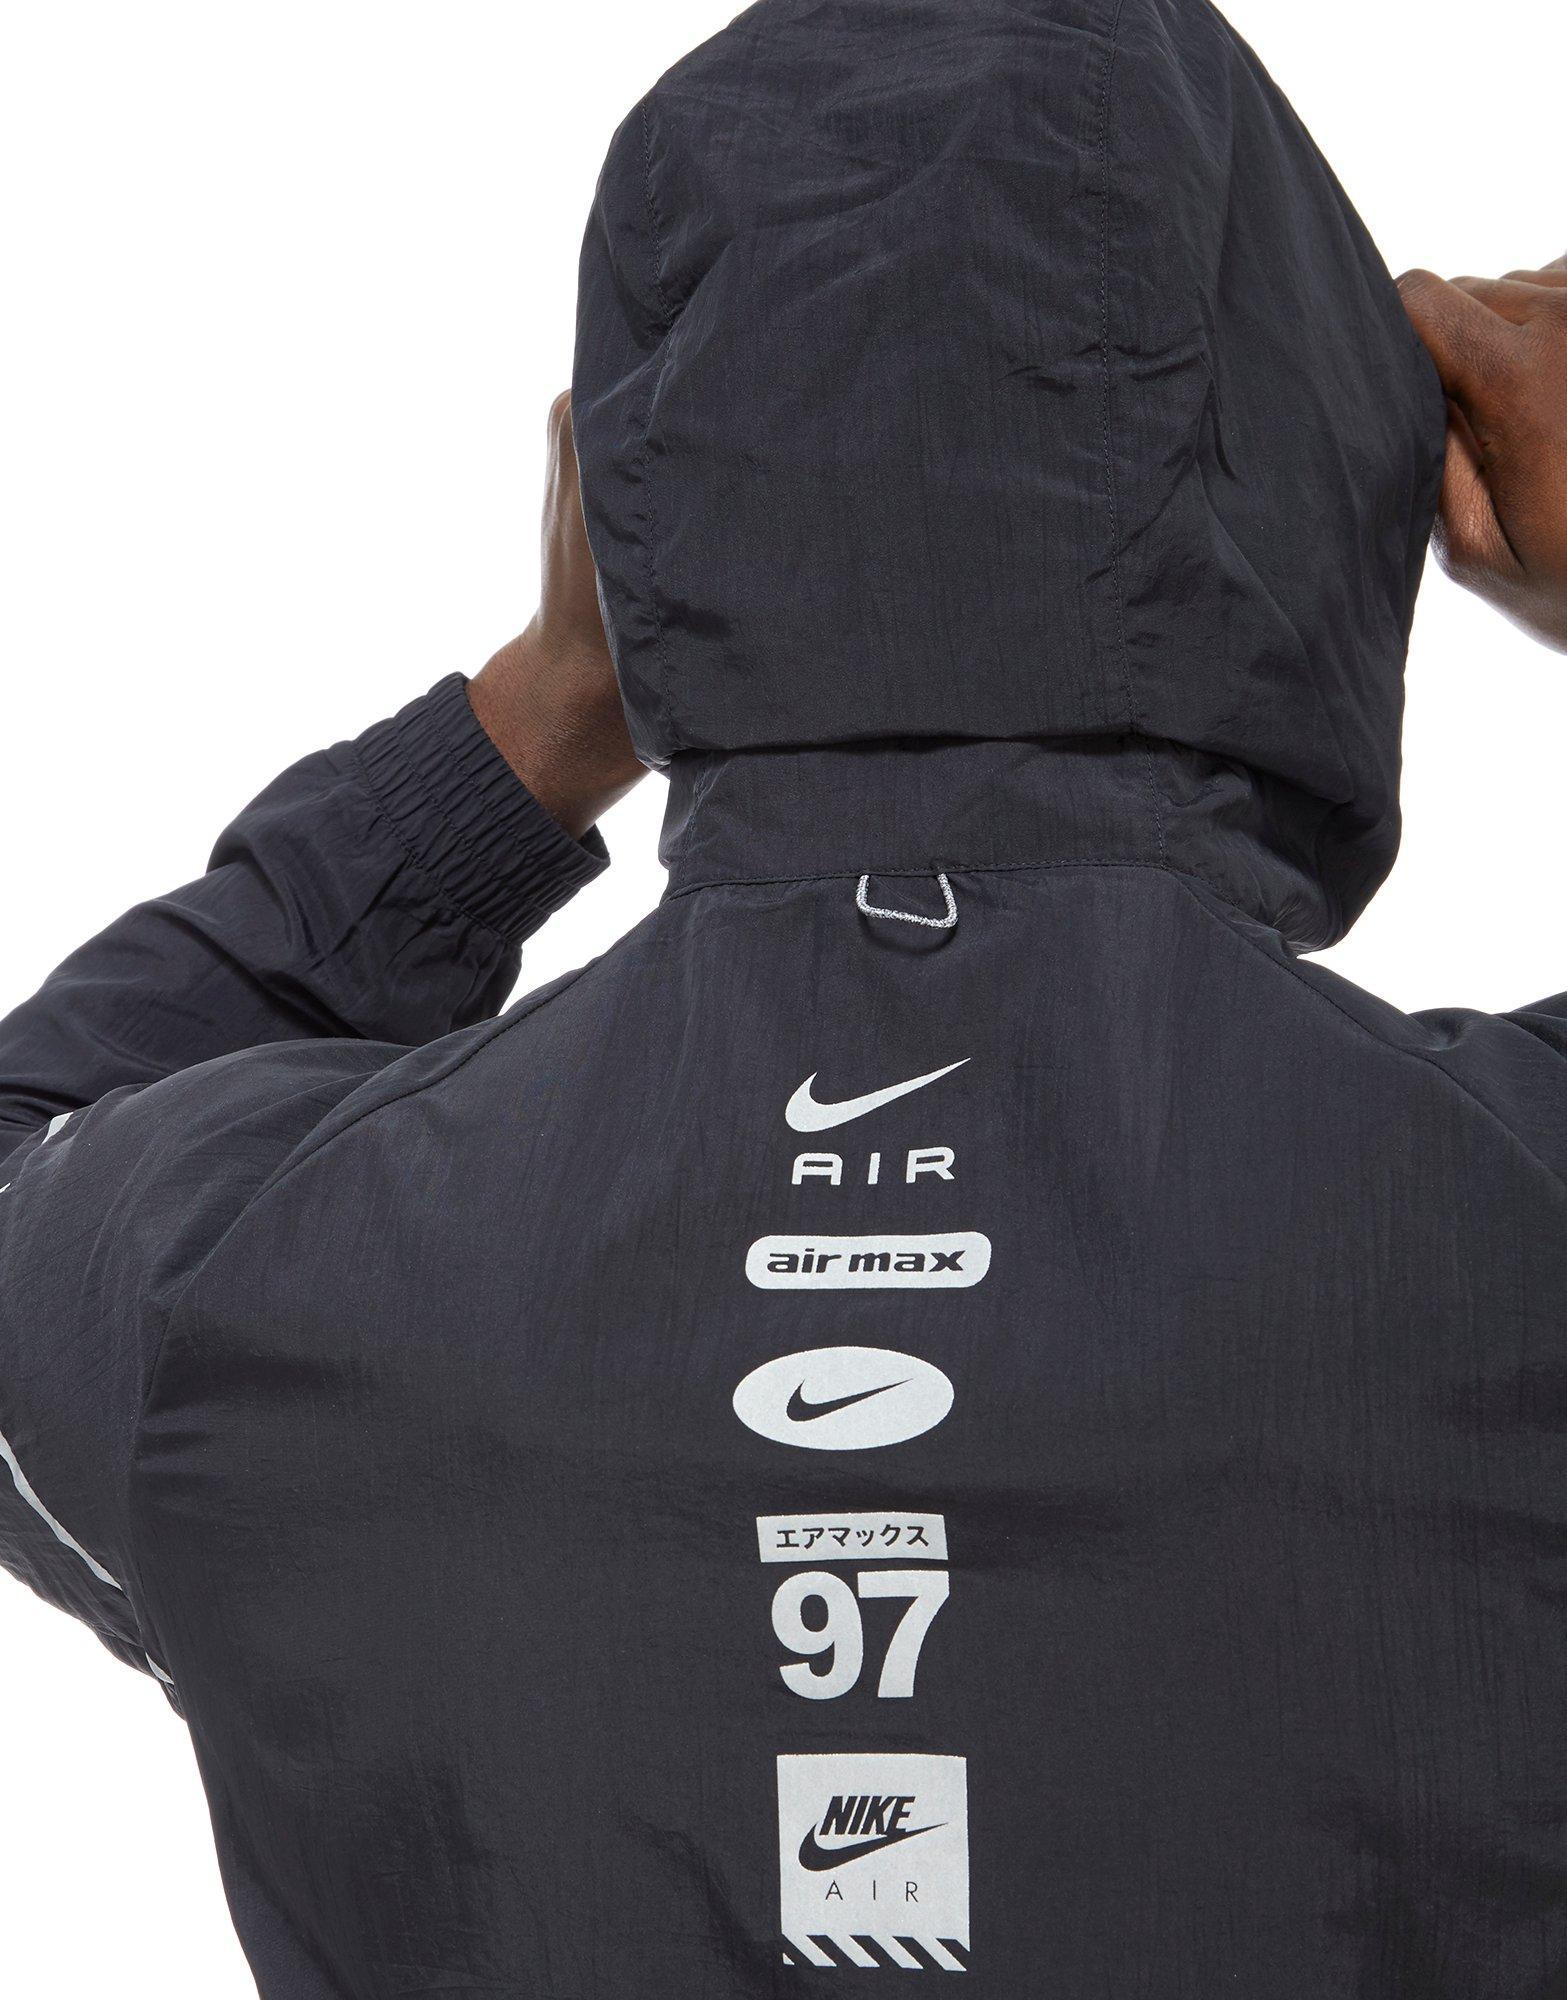 Nike Synthetic Air Hybrid 12 Zip Woven Jacket in Black for